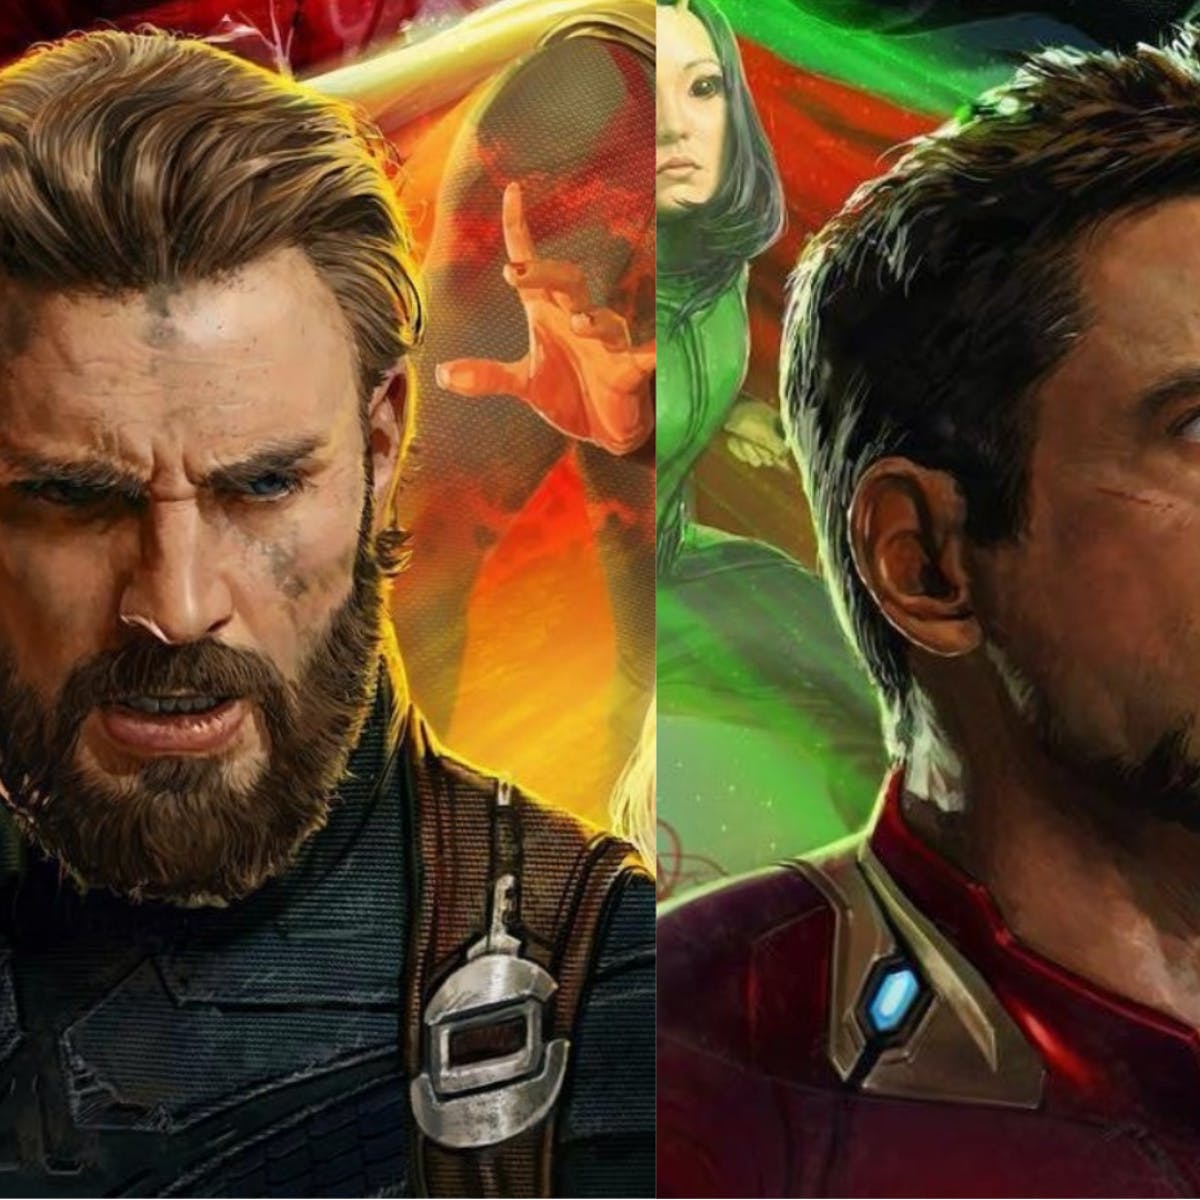 'Infinity War' Will Focus on Marvel's Biggest A-Listers